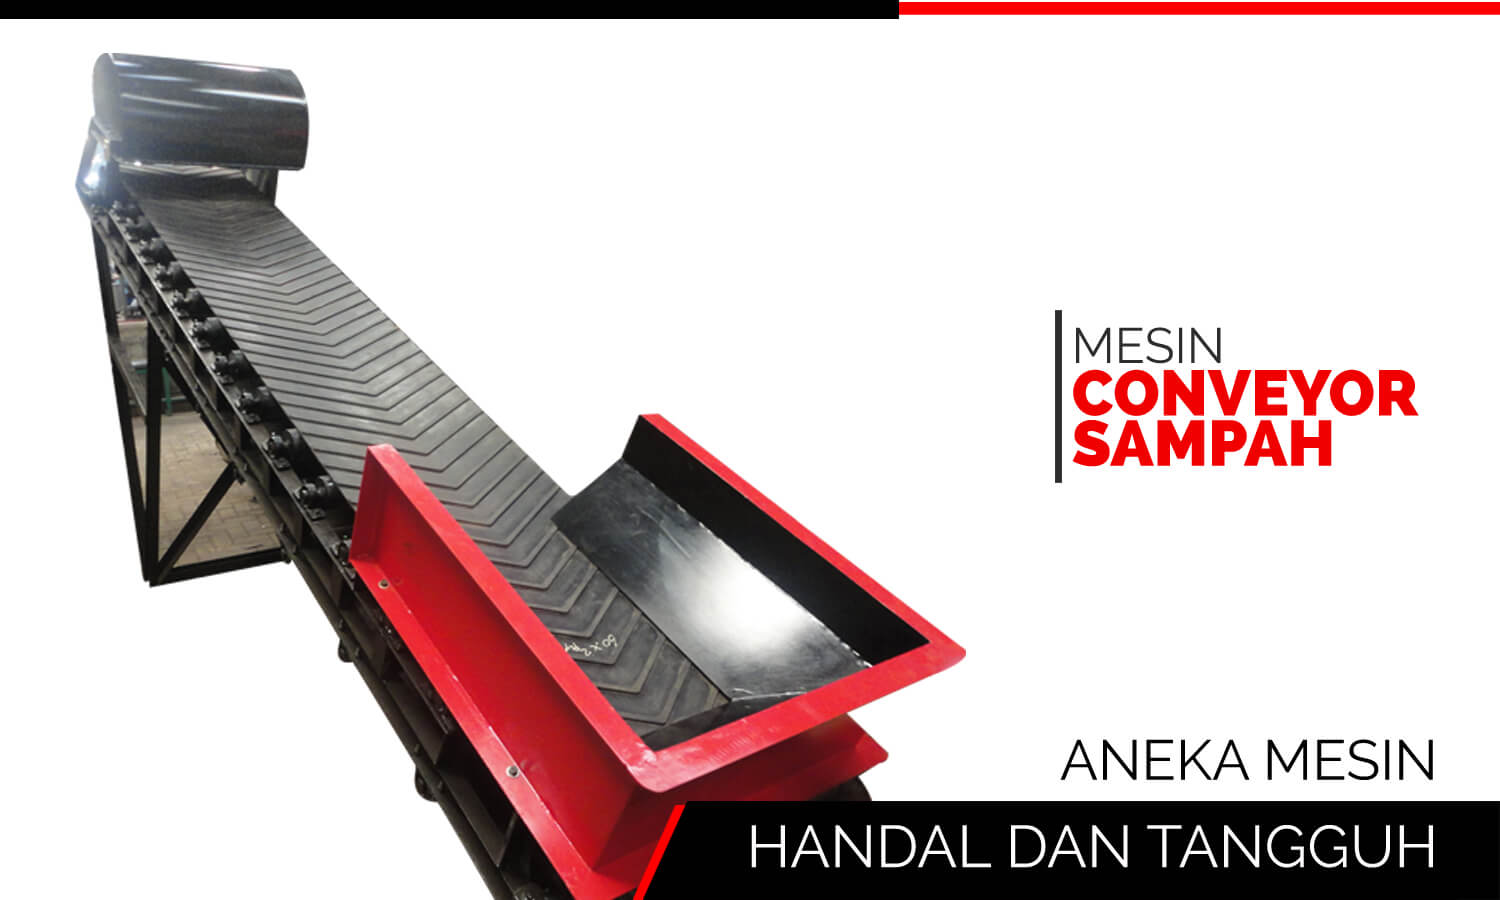 aneka-mesin-conveyor-sampah-2017